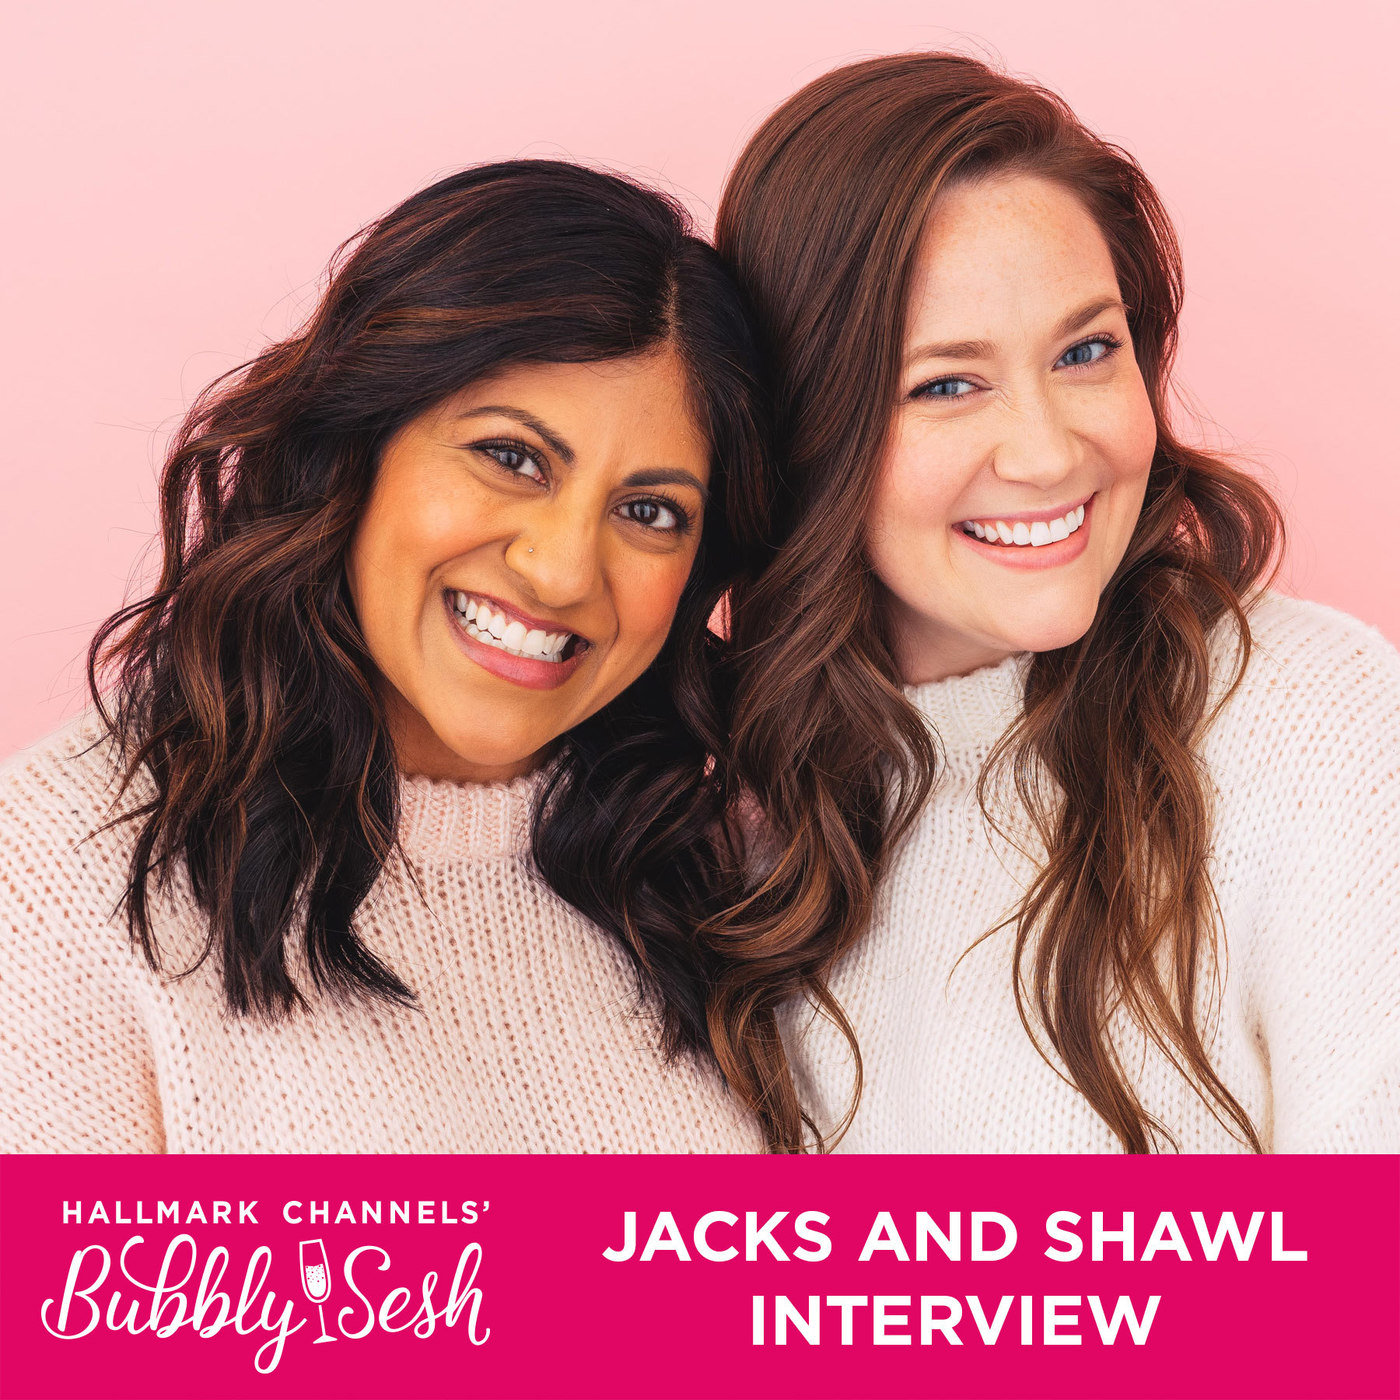 Jacks and Shawl Interview